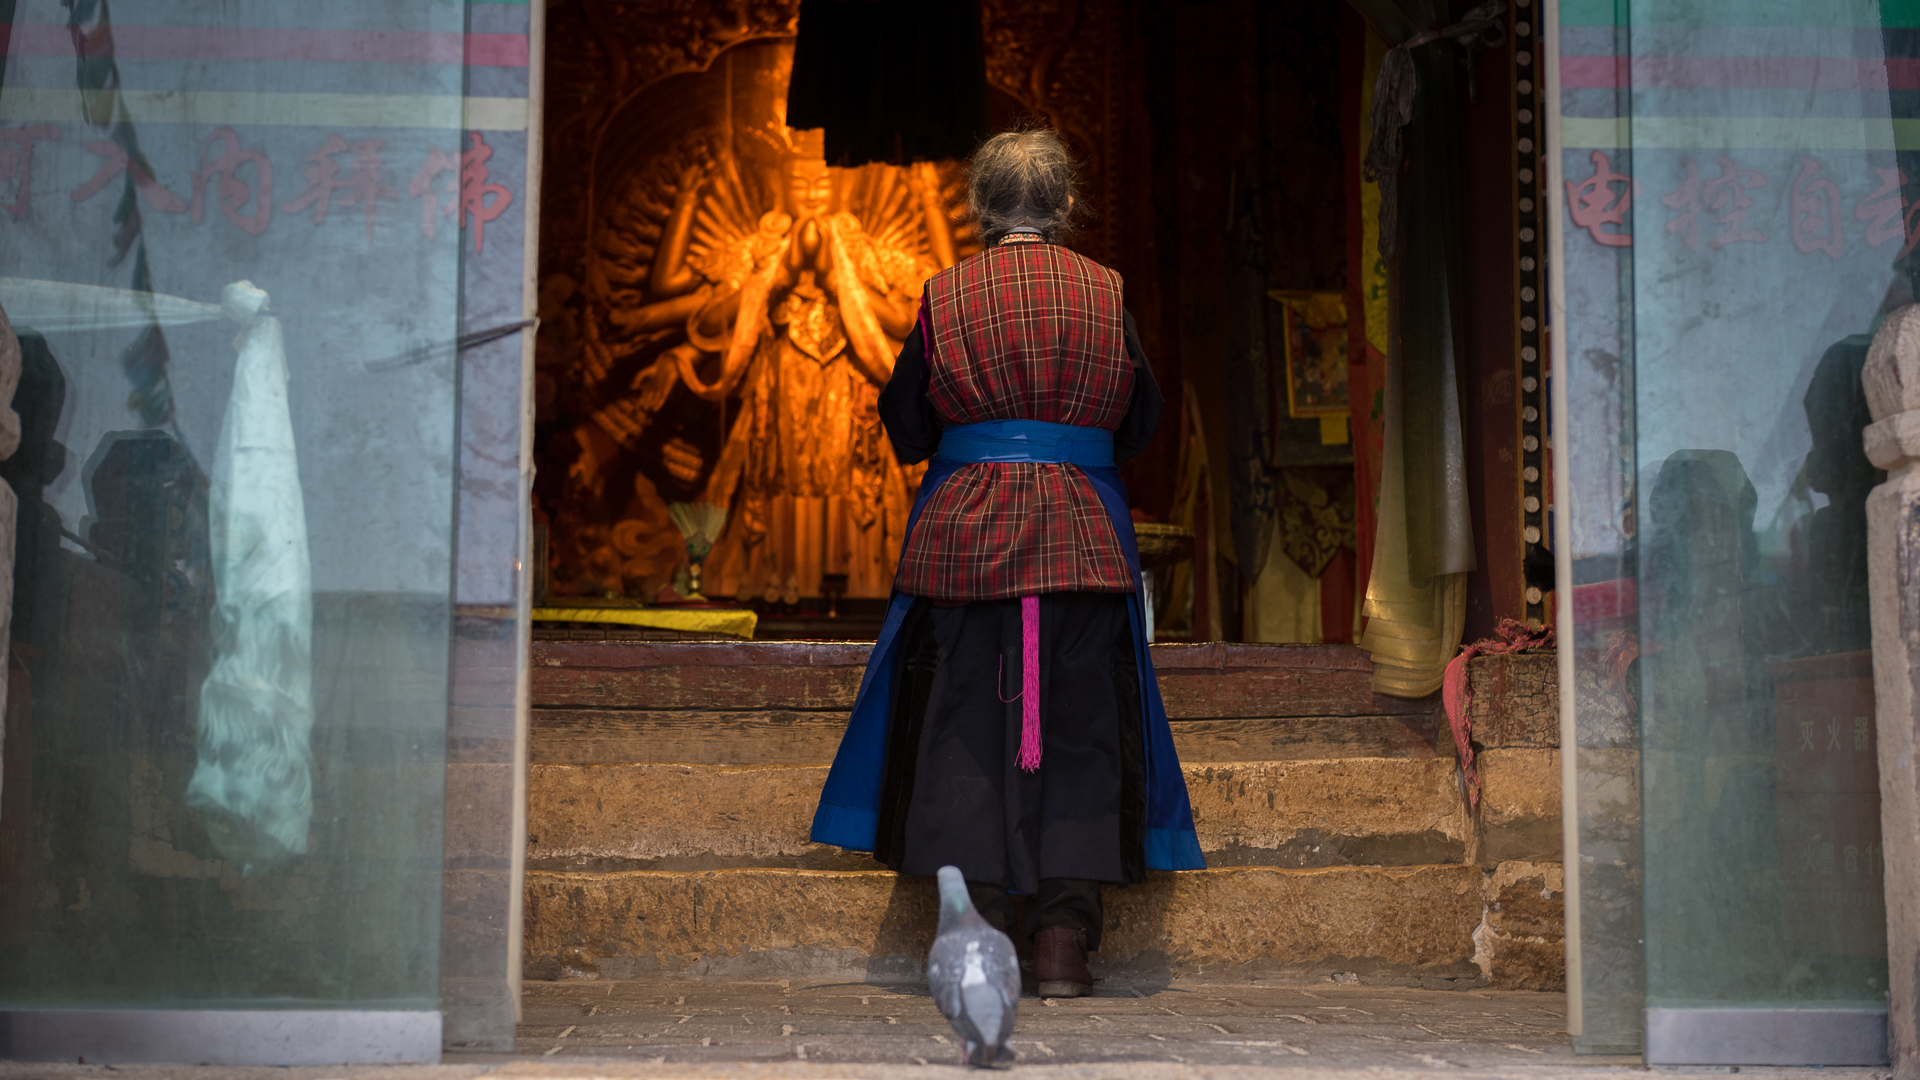 A Tibetan woman prays in a Buddhist temple.